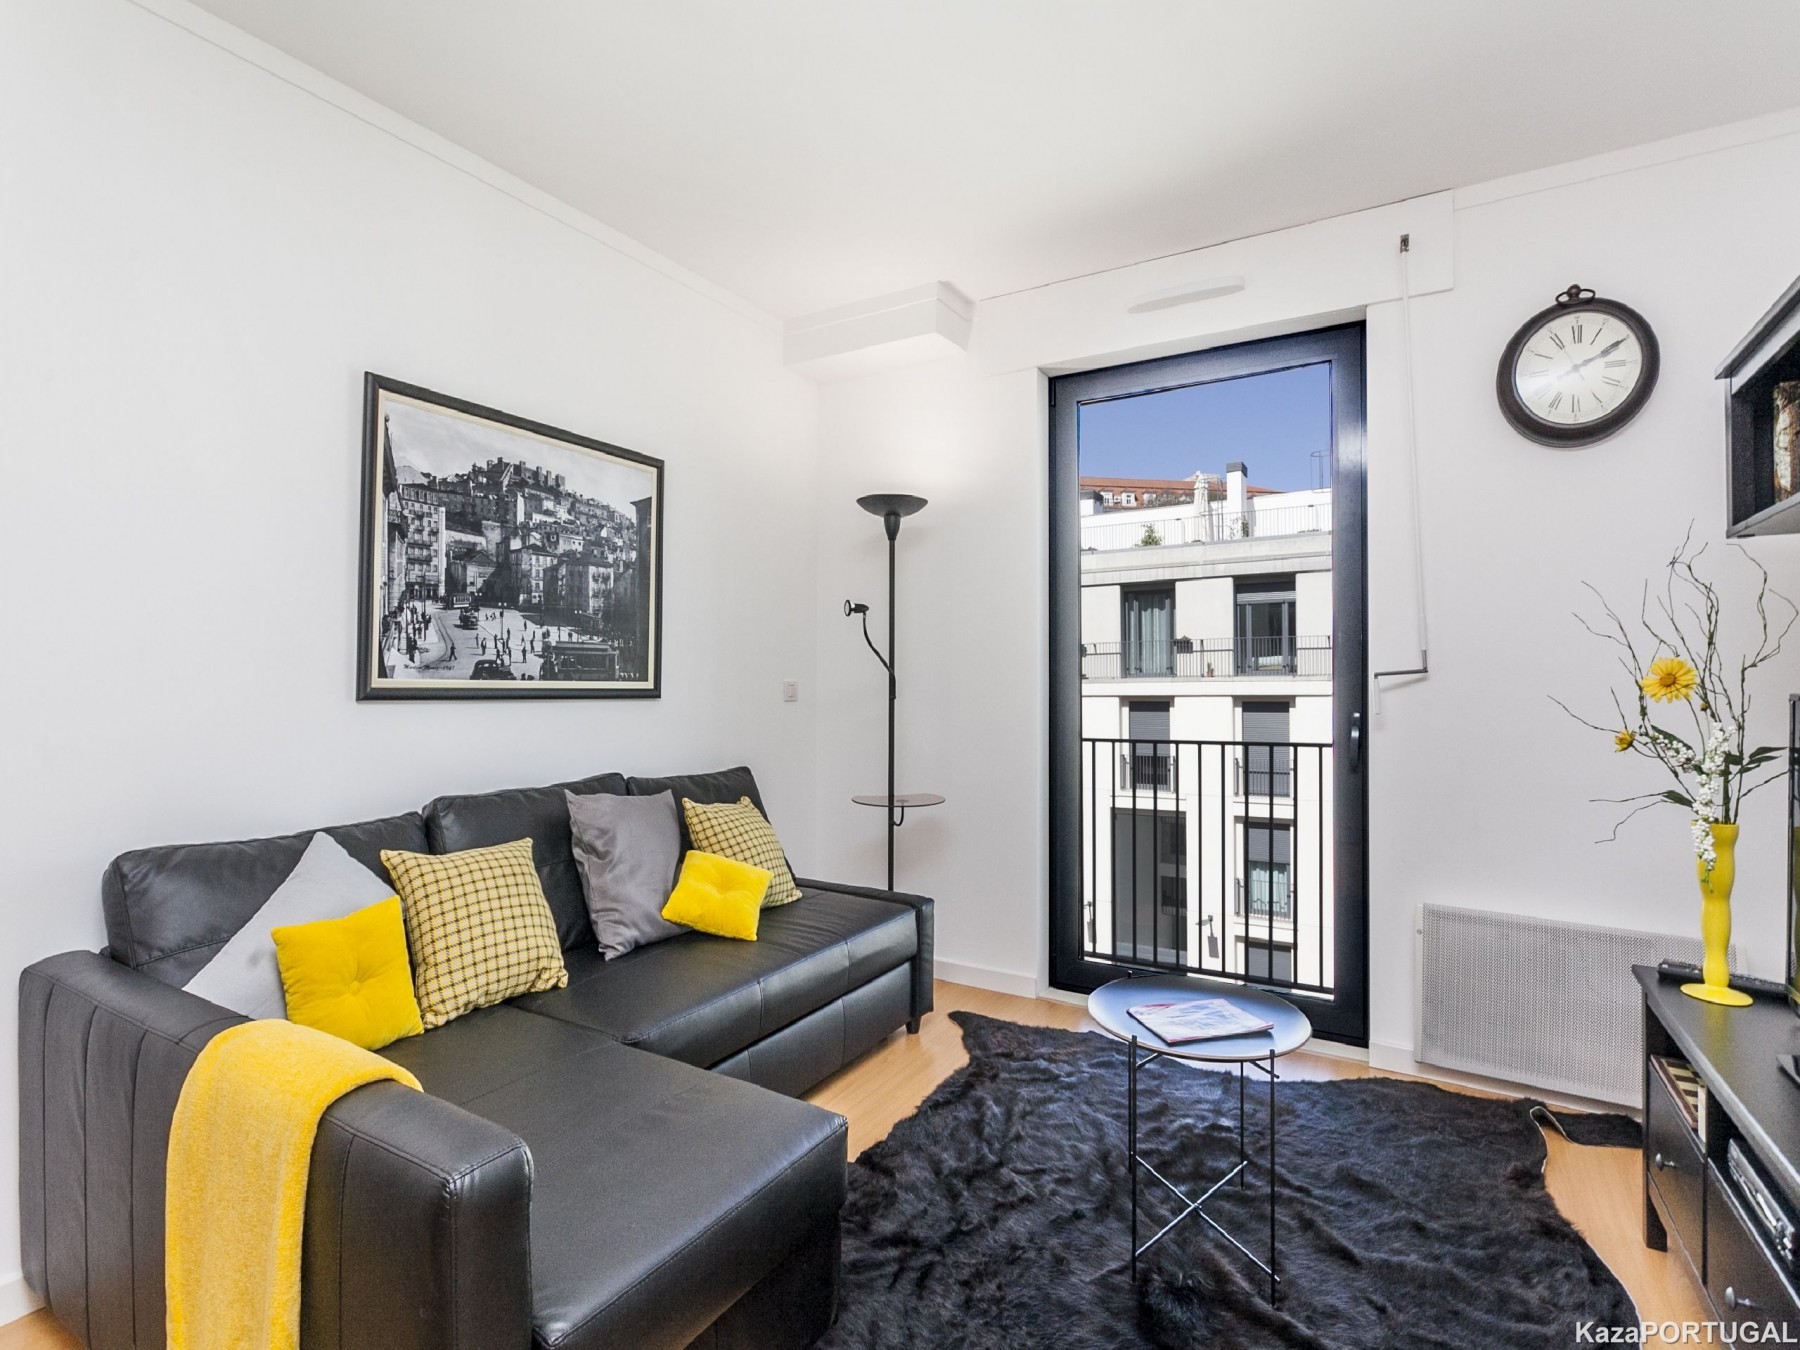 Book an apartment online: what to look for